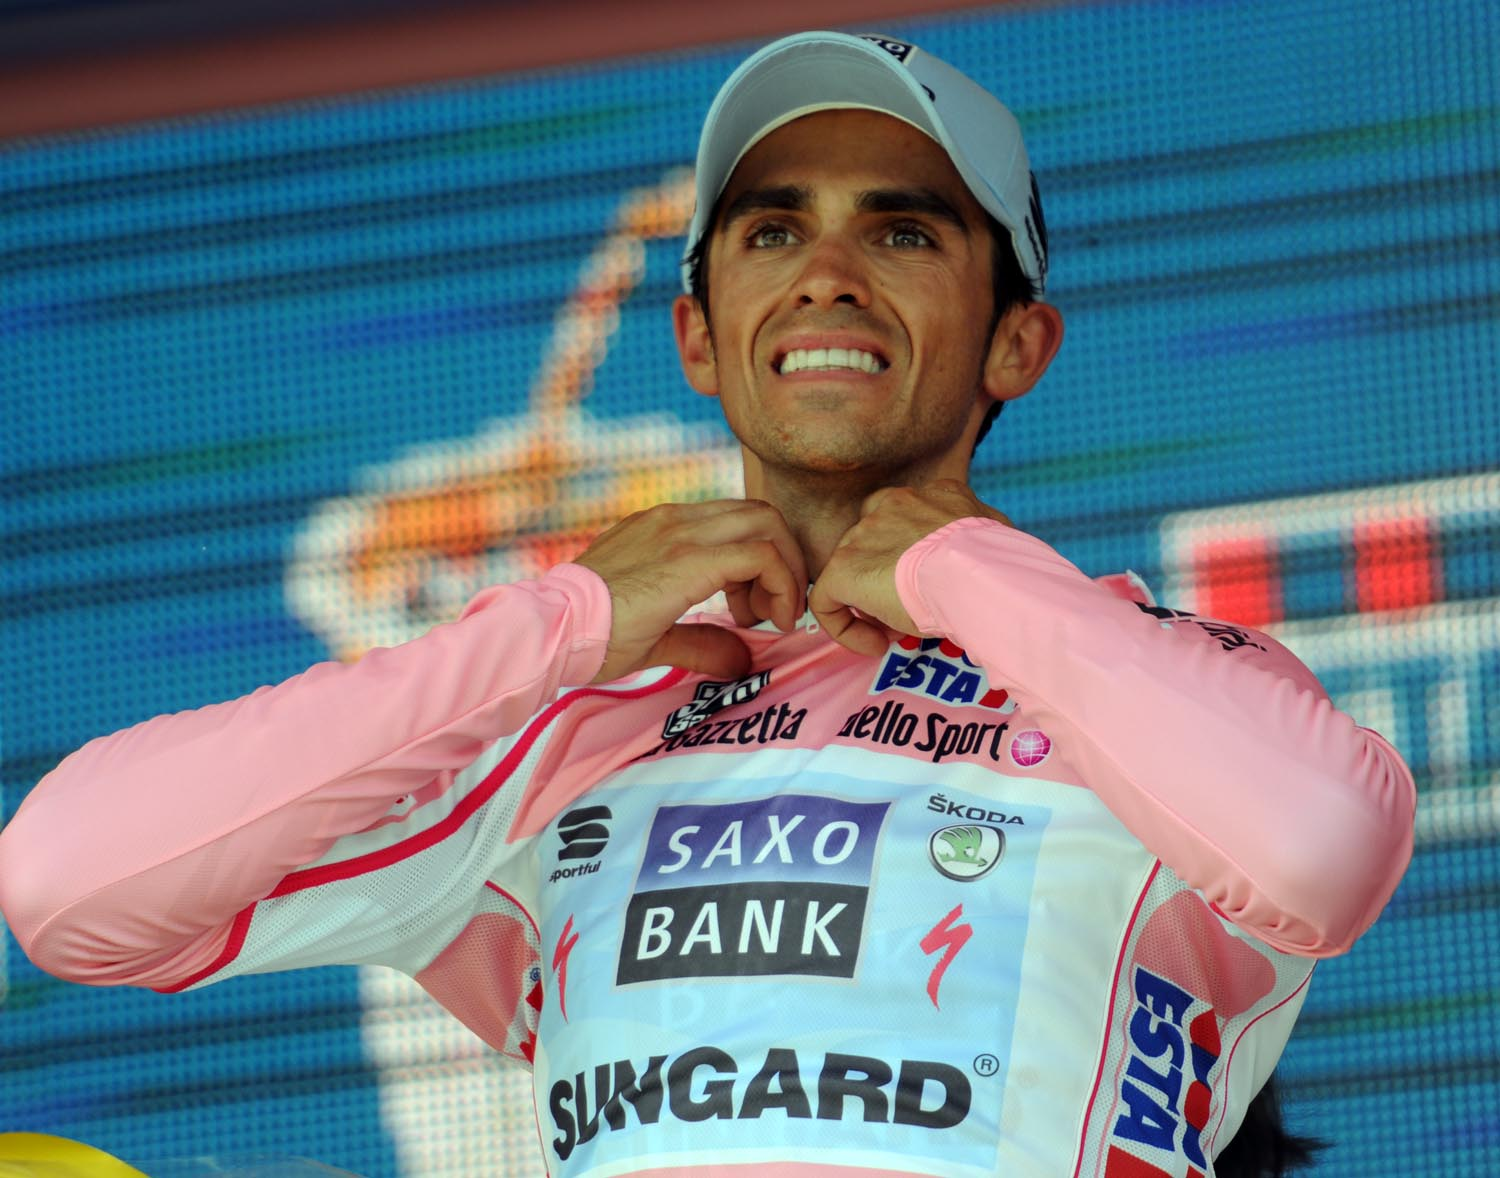 Alberto Contador on podium, Giro d